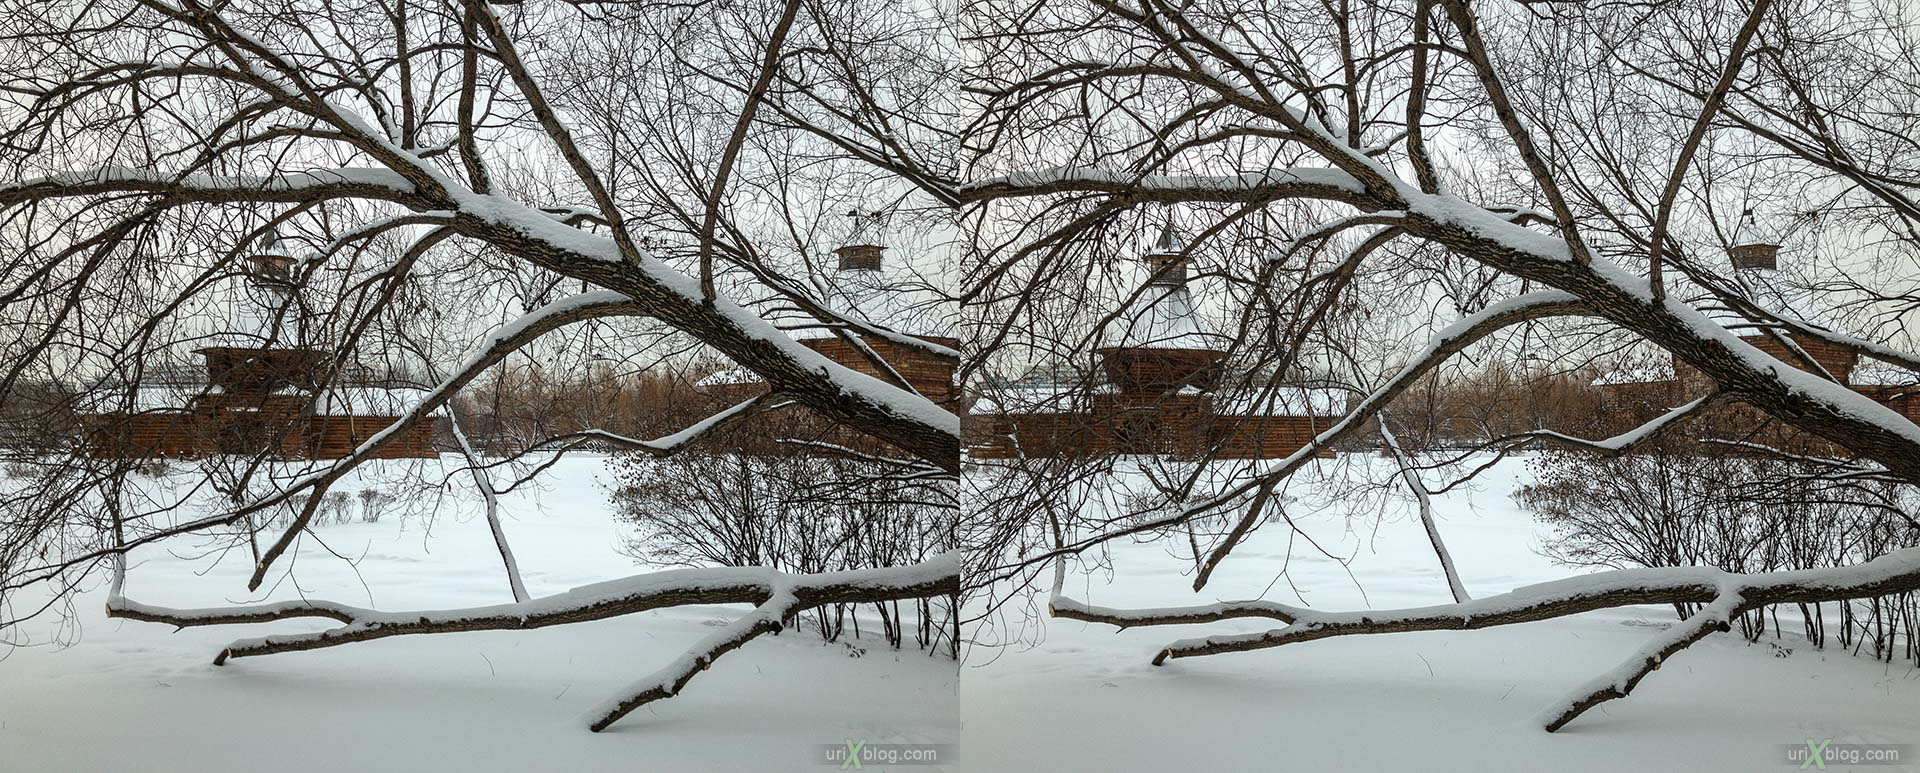 Russian Wooden Architecture, tower of the Nikolo-Korelsky monastery, Mokhovaya (Moss) tower, Kolomenskoye, park, wooden building, winter, snow, Moscow, Russia, 3D, stereo pair, cross-eyed, crossview, cross view stereo pair, stereoscopic